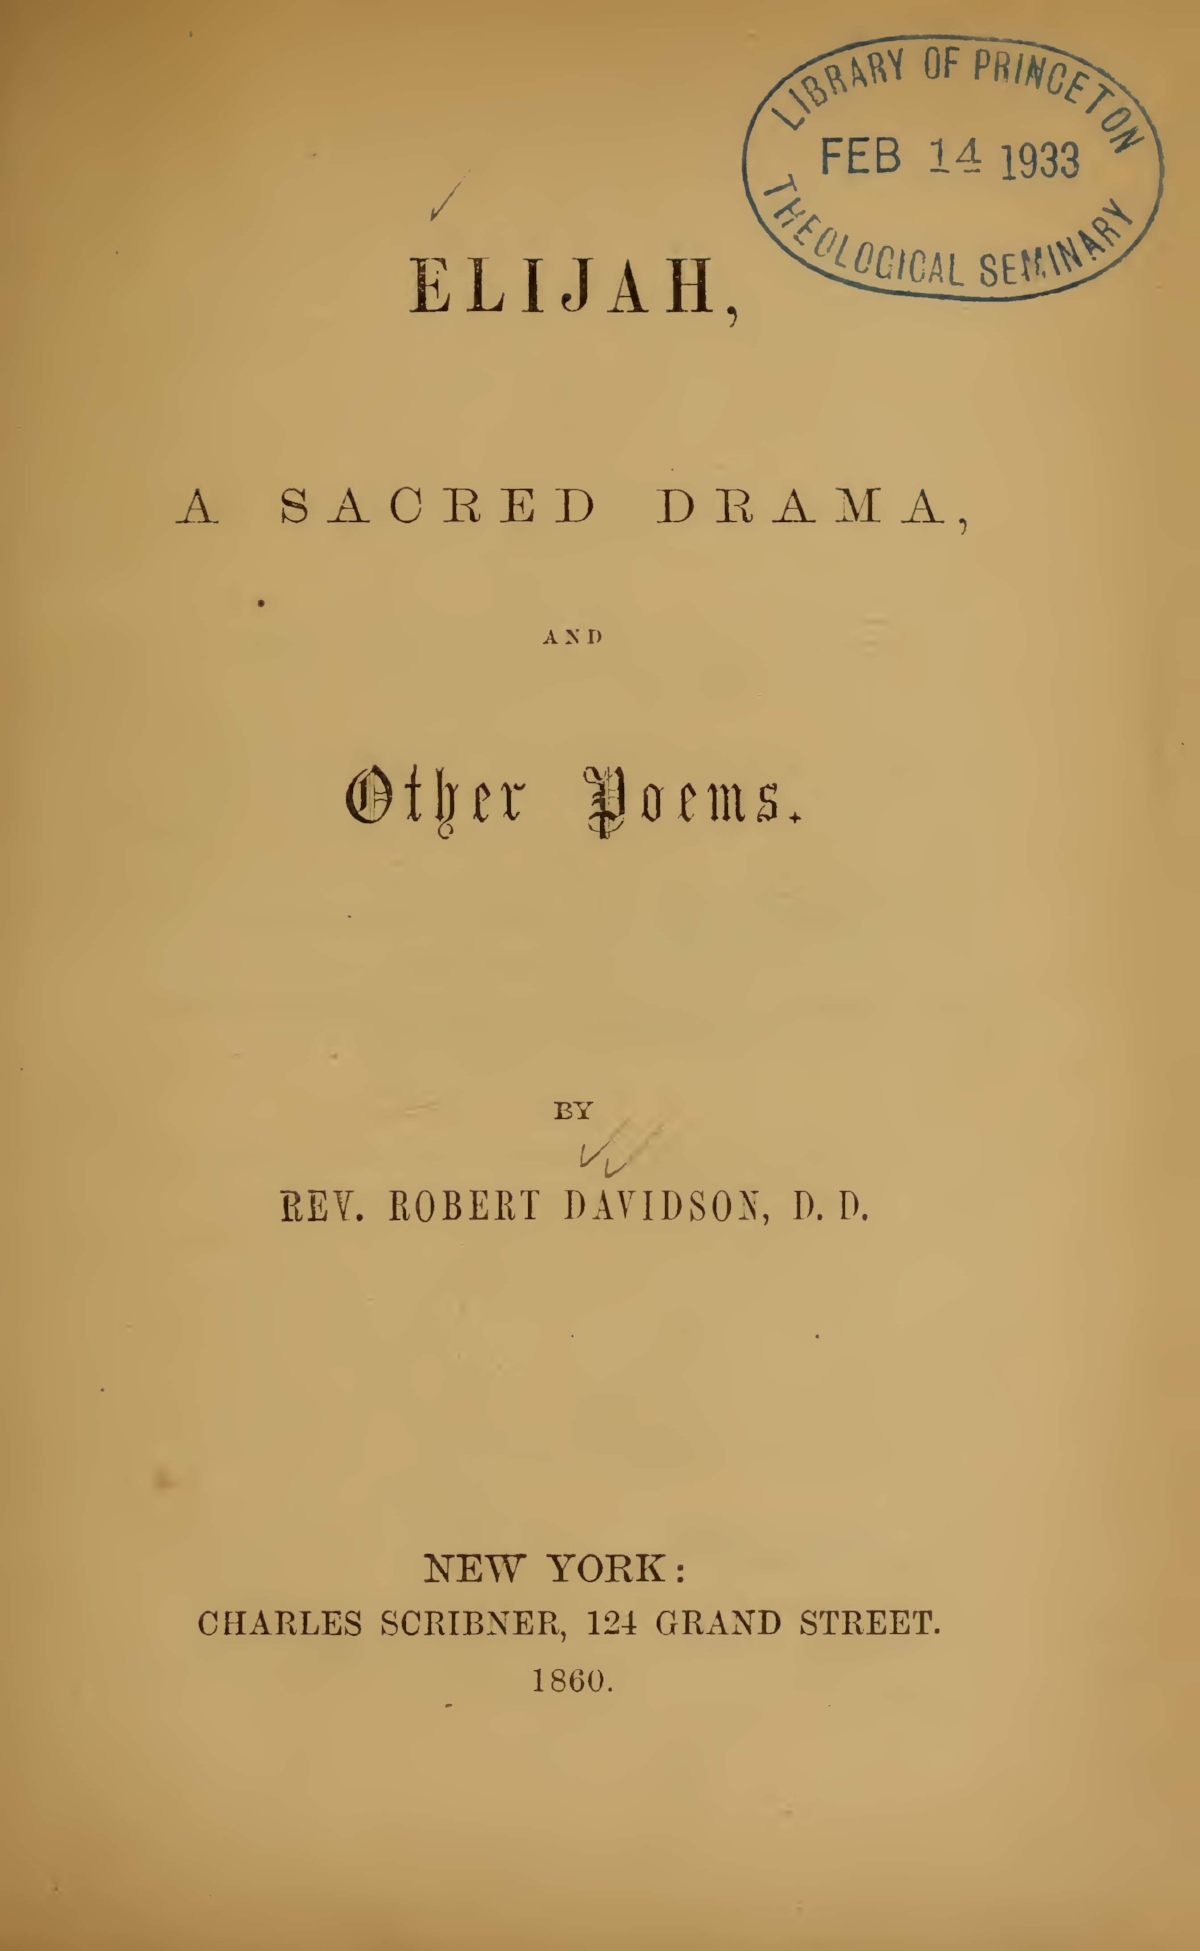 Davidson, Robert, Elijah A Sacred Drama and Other Poems Title Page.jpg